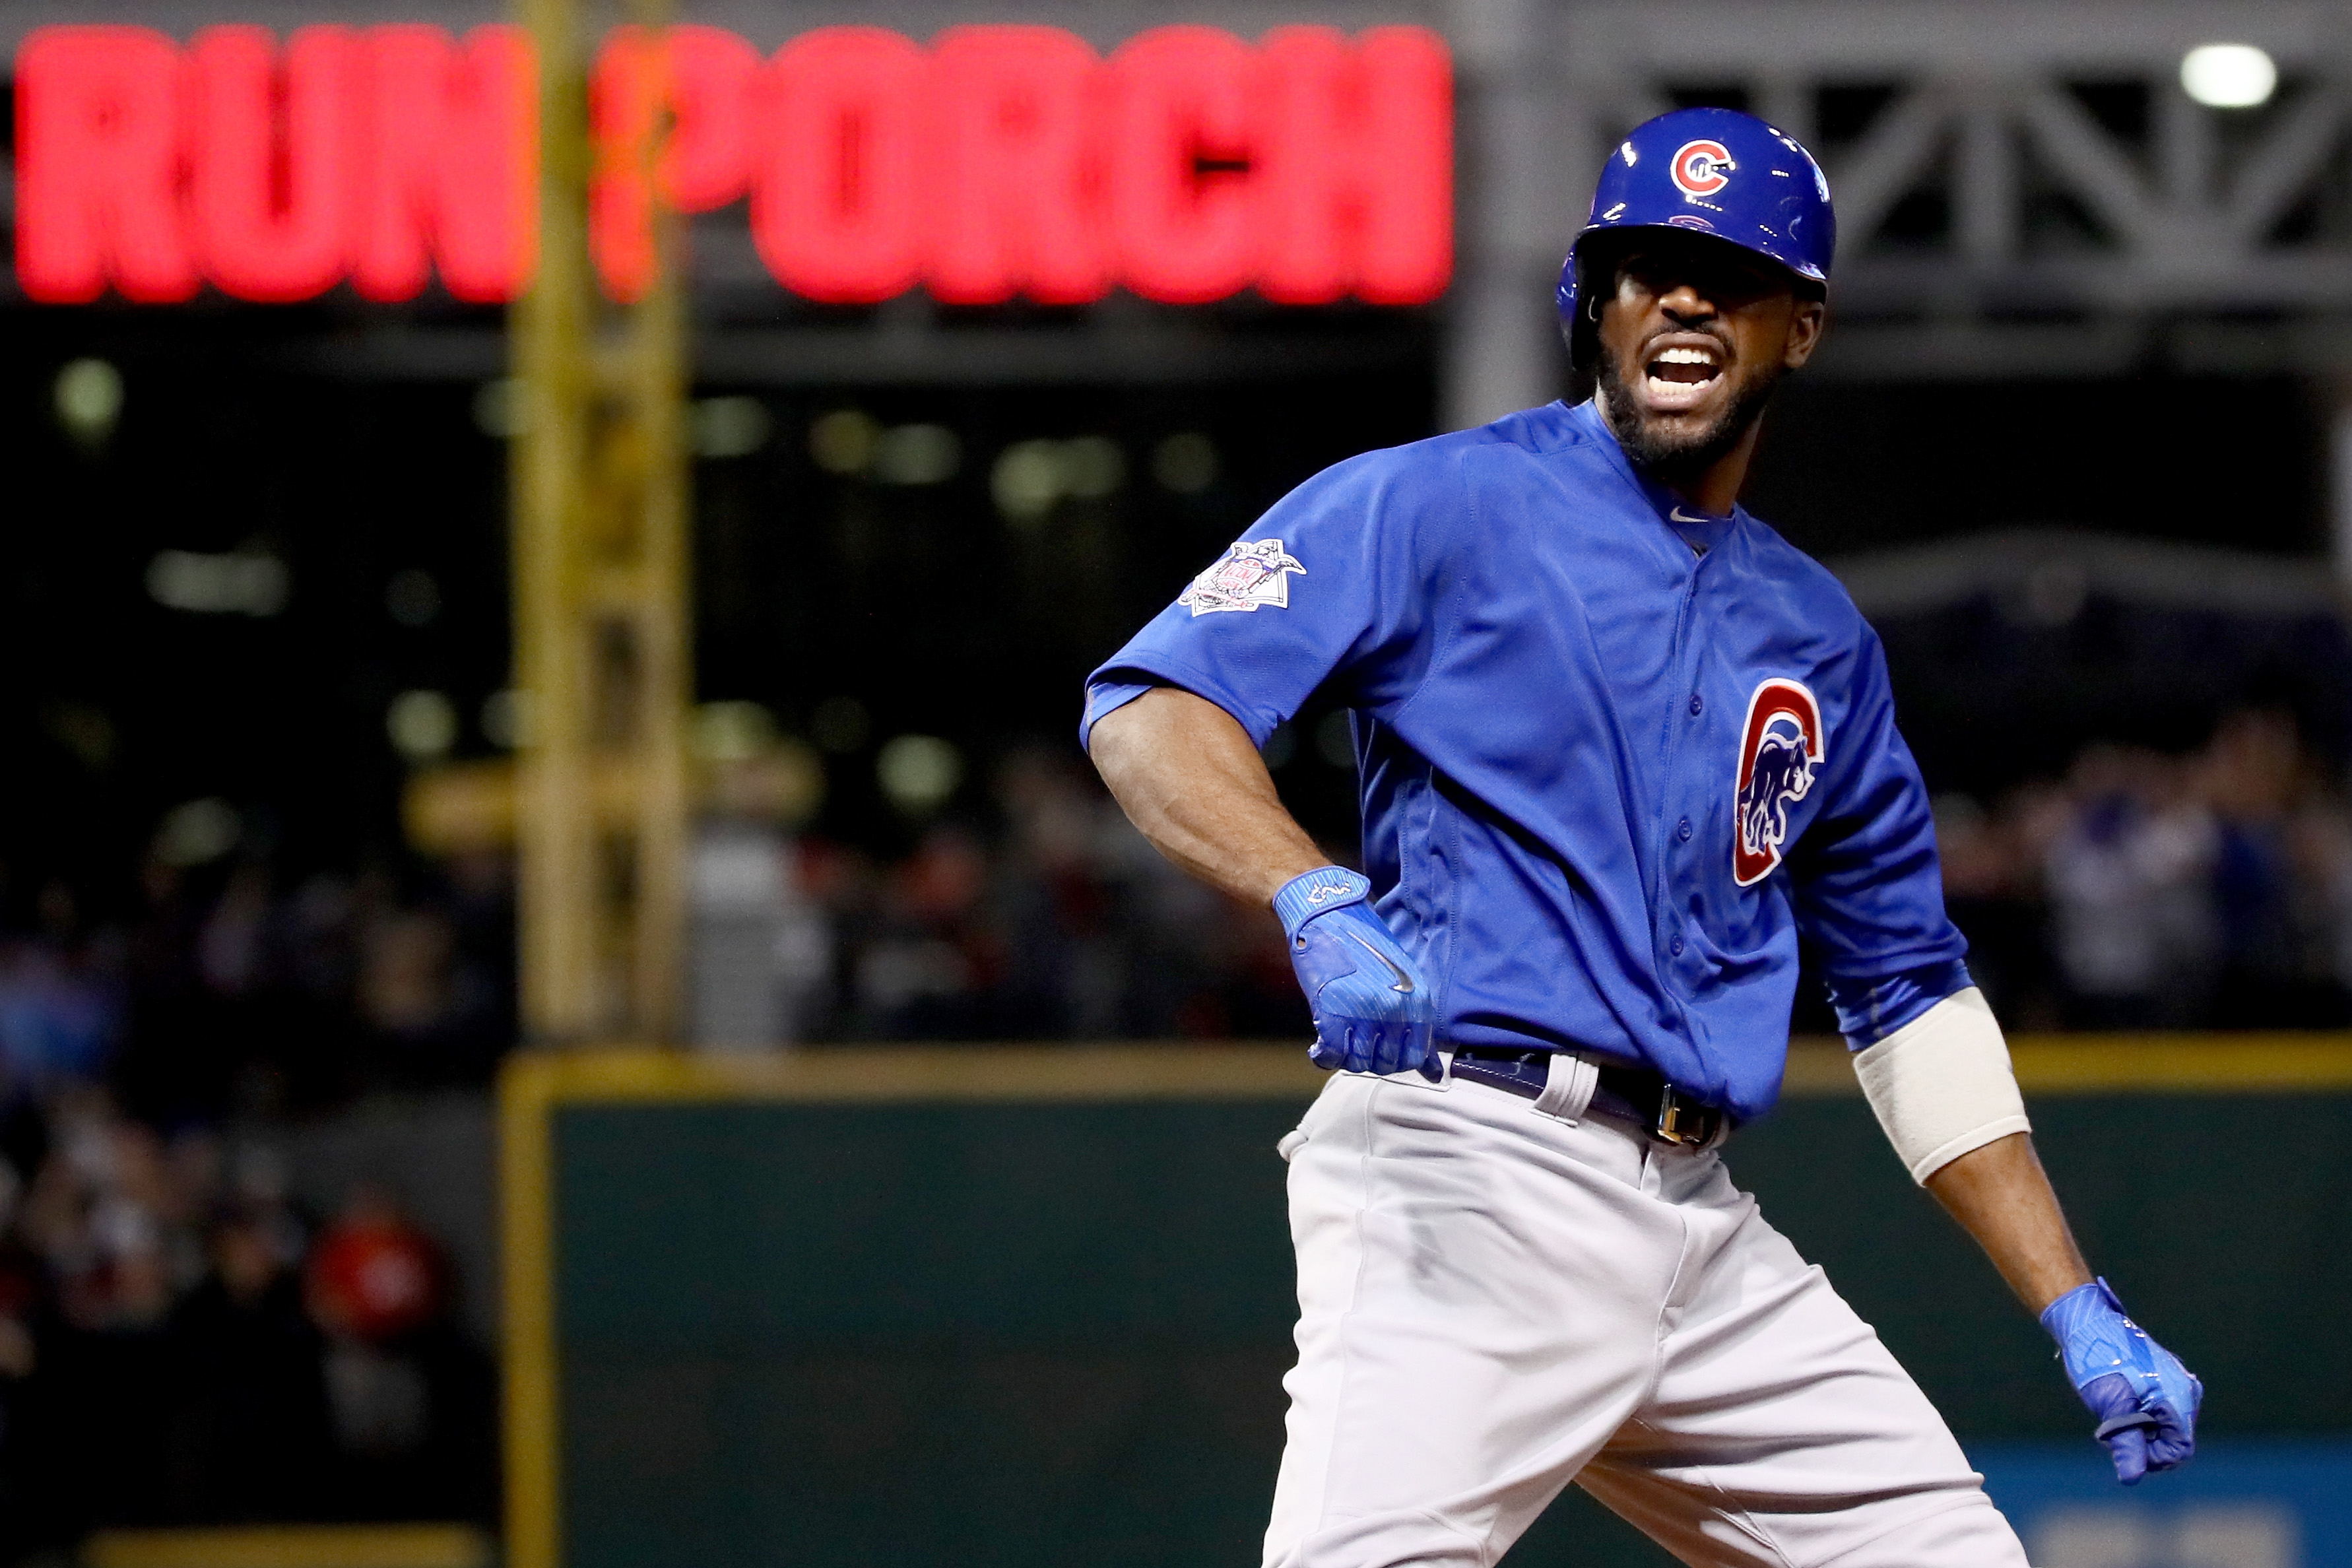 CLEVELAND, OH - NOVEMBER 02: Dexter Fowler #24 of the Chicago Cubs celebrates after hitting a lead off home run in the first inning against the Cleveland Indians in Game Seven of the 2016 World Series at Progressive Field on November 2, 2016 in Cleveland, Ohio. (Photo by Ezra Shaw/Getty Images)